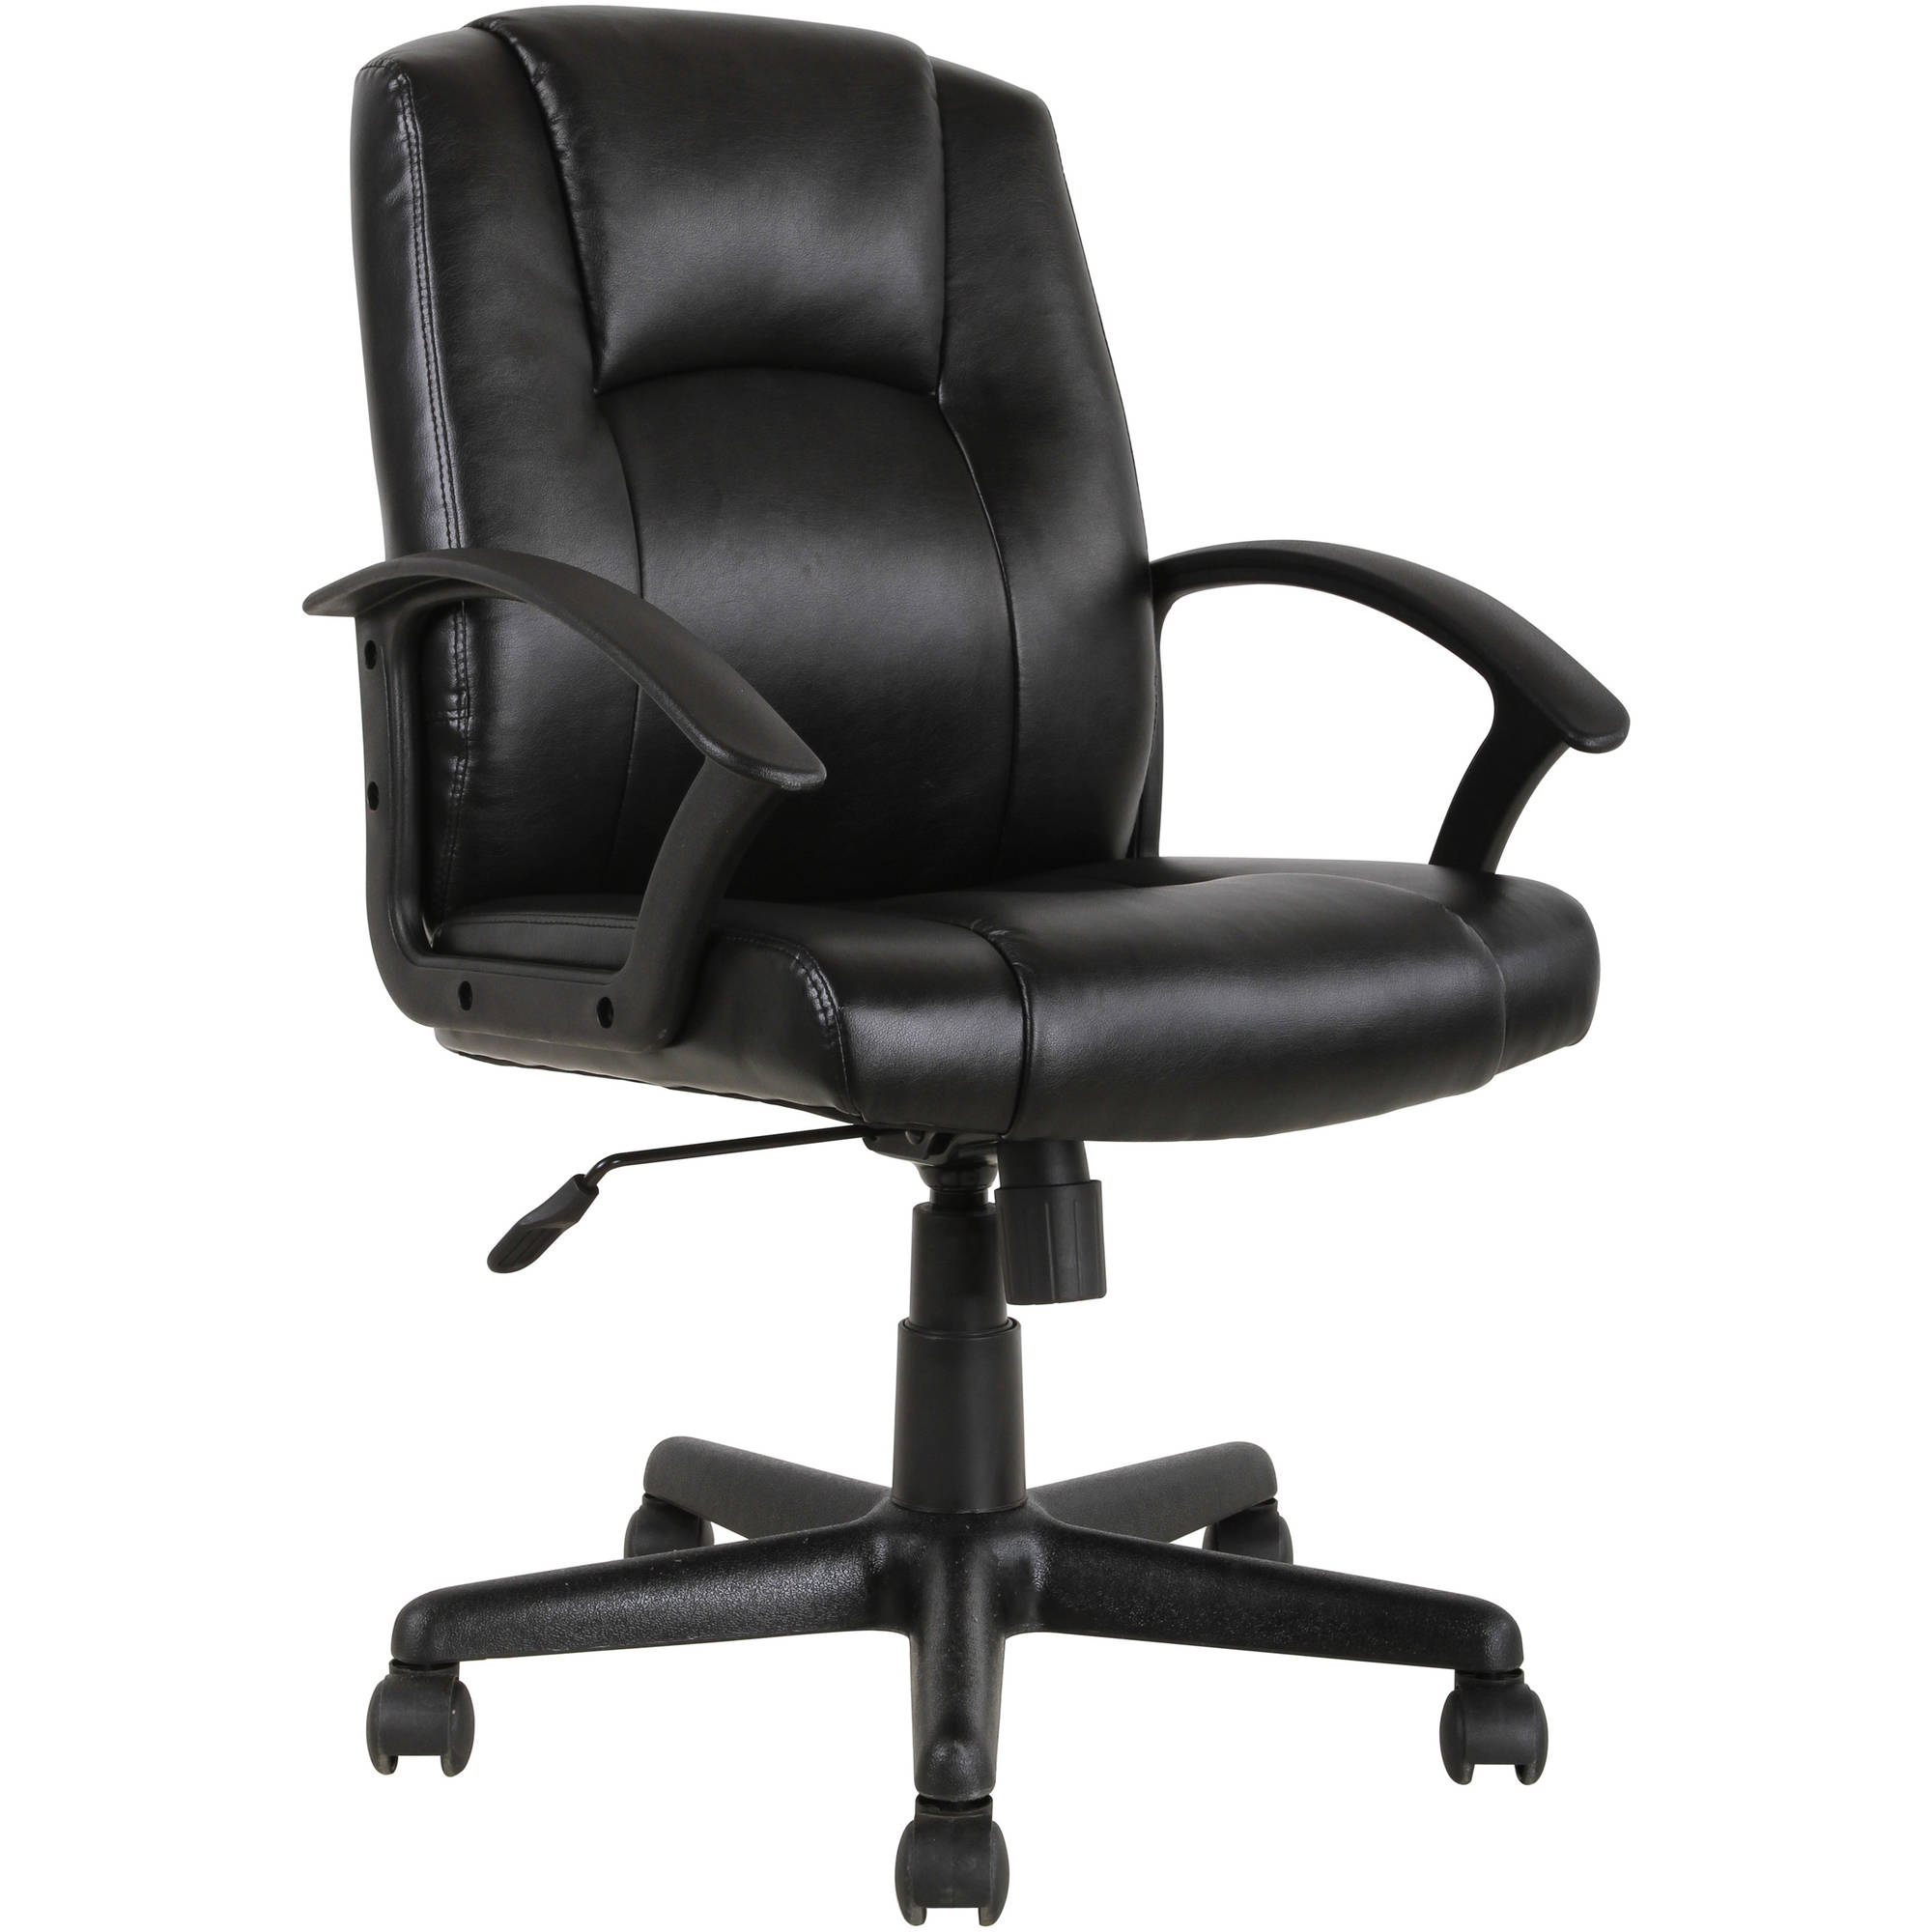 Leather fice Chairs Boss B9406 Black White Leather fice